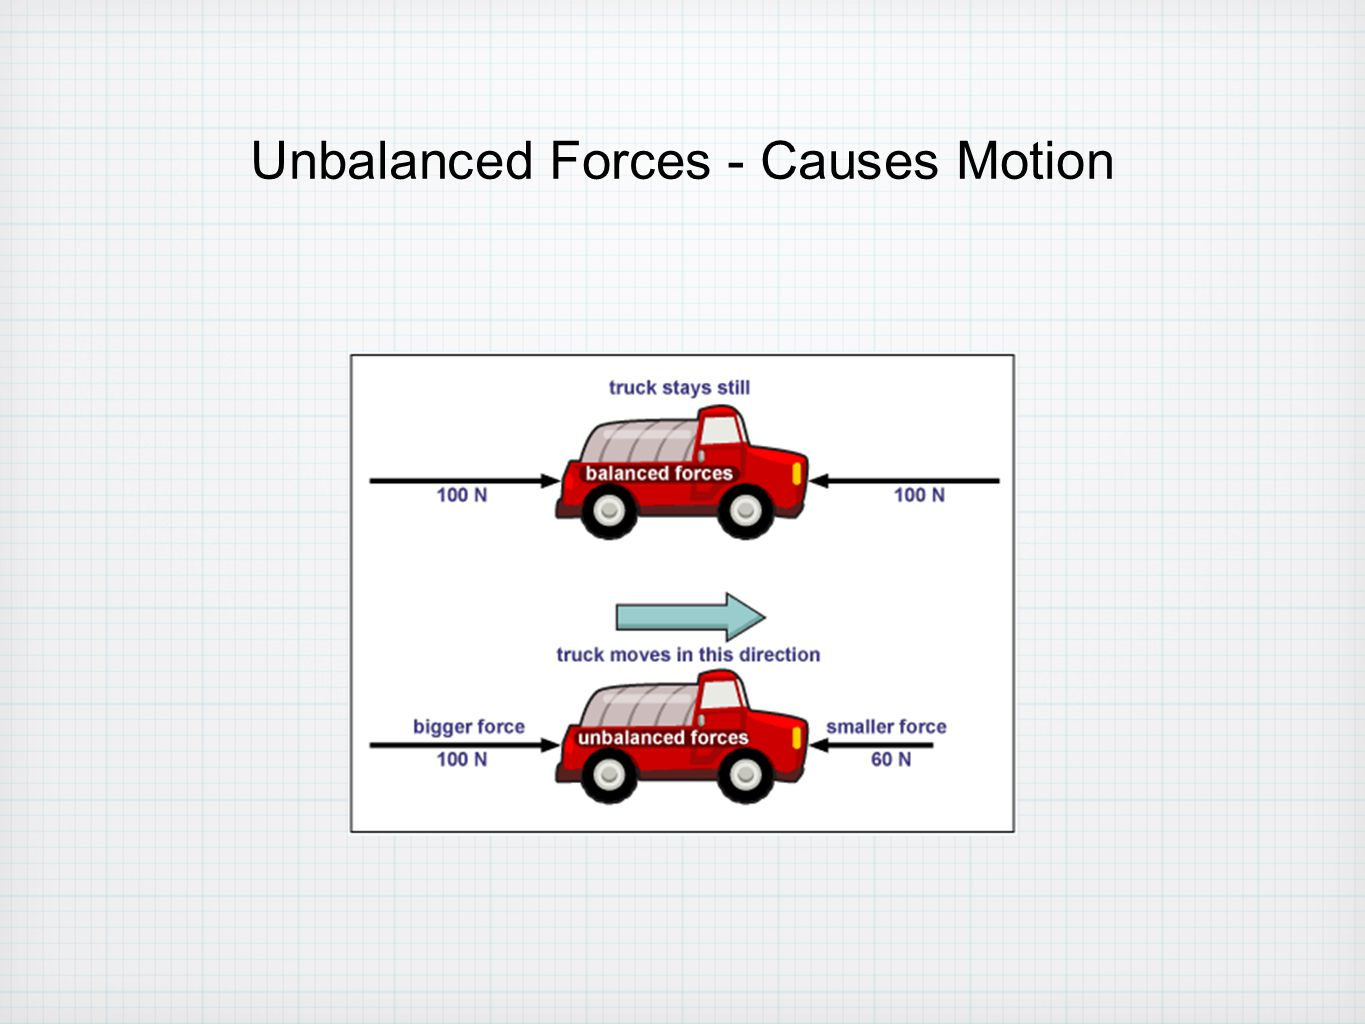 Unbalanced Forces - Causes Motion